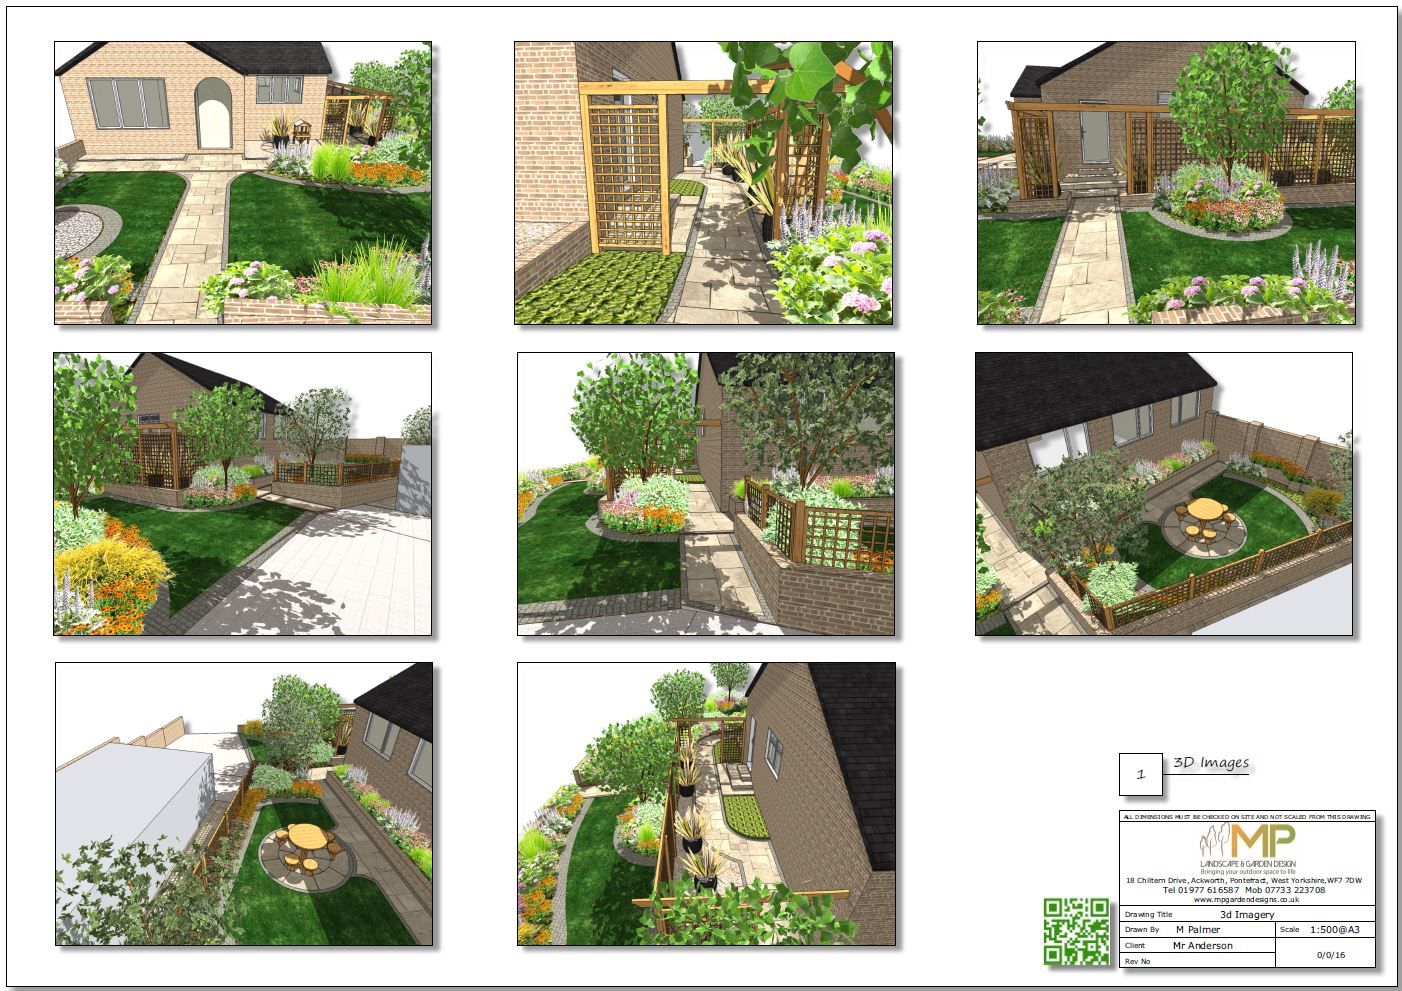 3, Garden layout plan 3D images for a property in Featherstone.